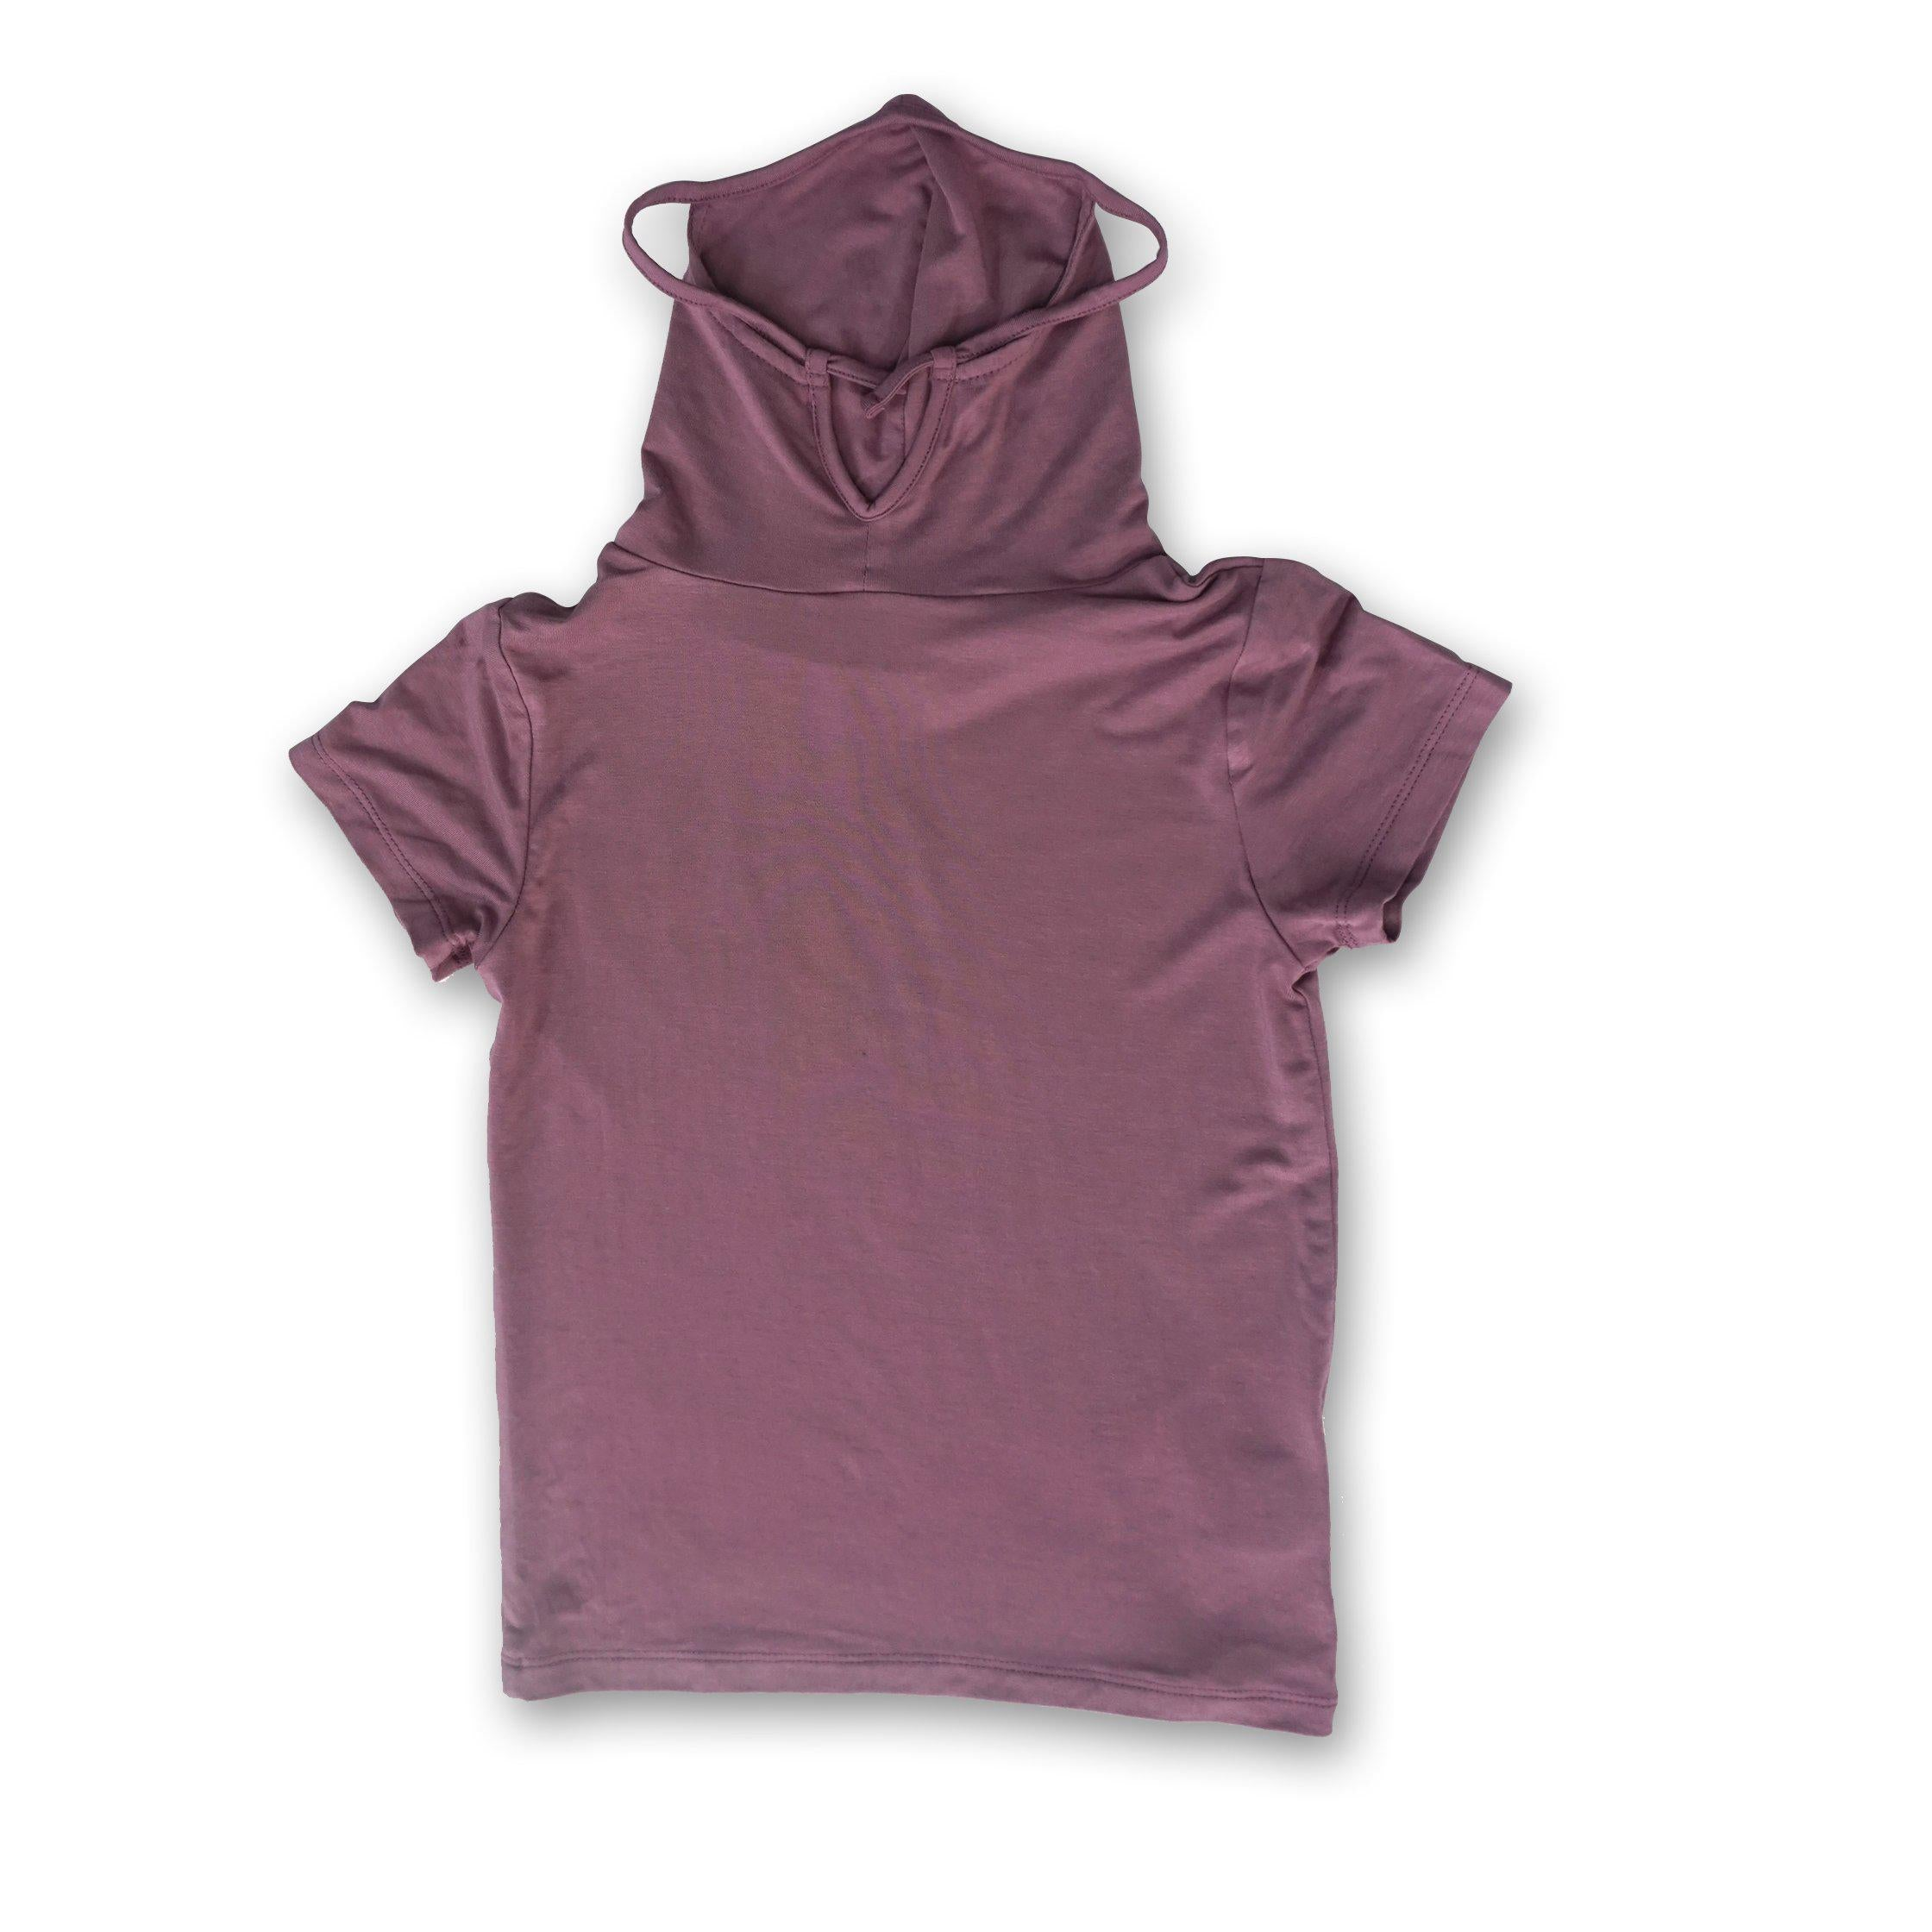 Kids Short Sleeve Lavender Shmask™